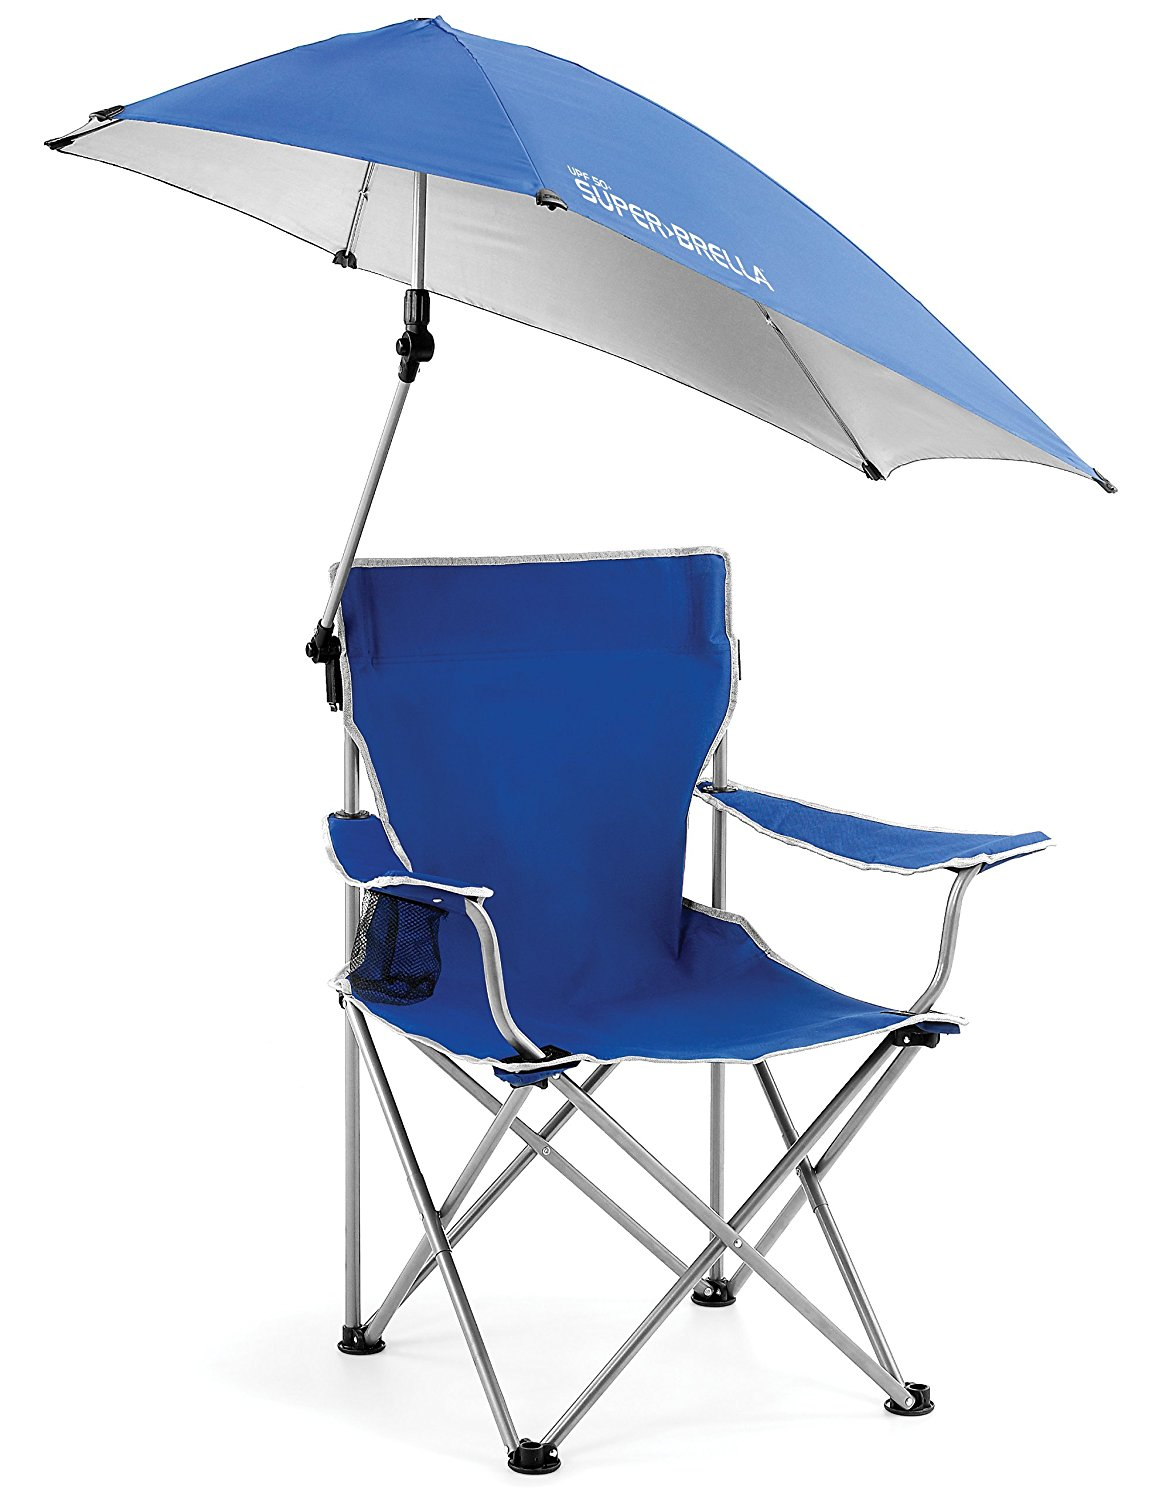 Quik Shade Chair White Plastic Adirondack Chairs Lowes Aliexpress Buy Outdoor Adjustable Canopy